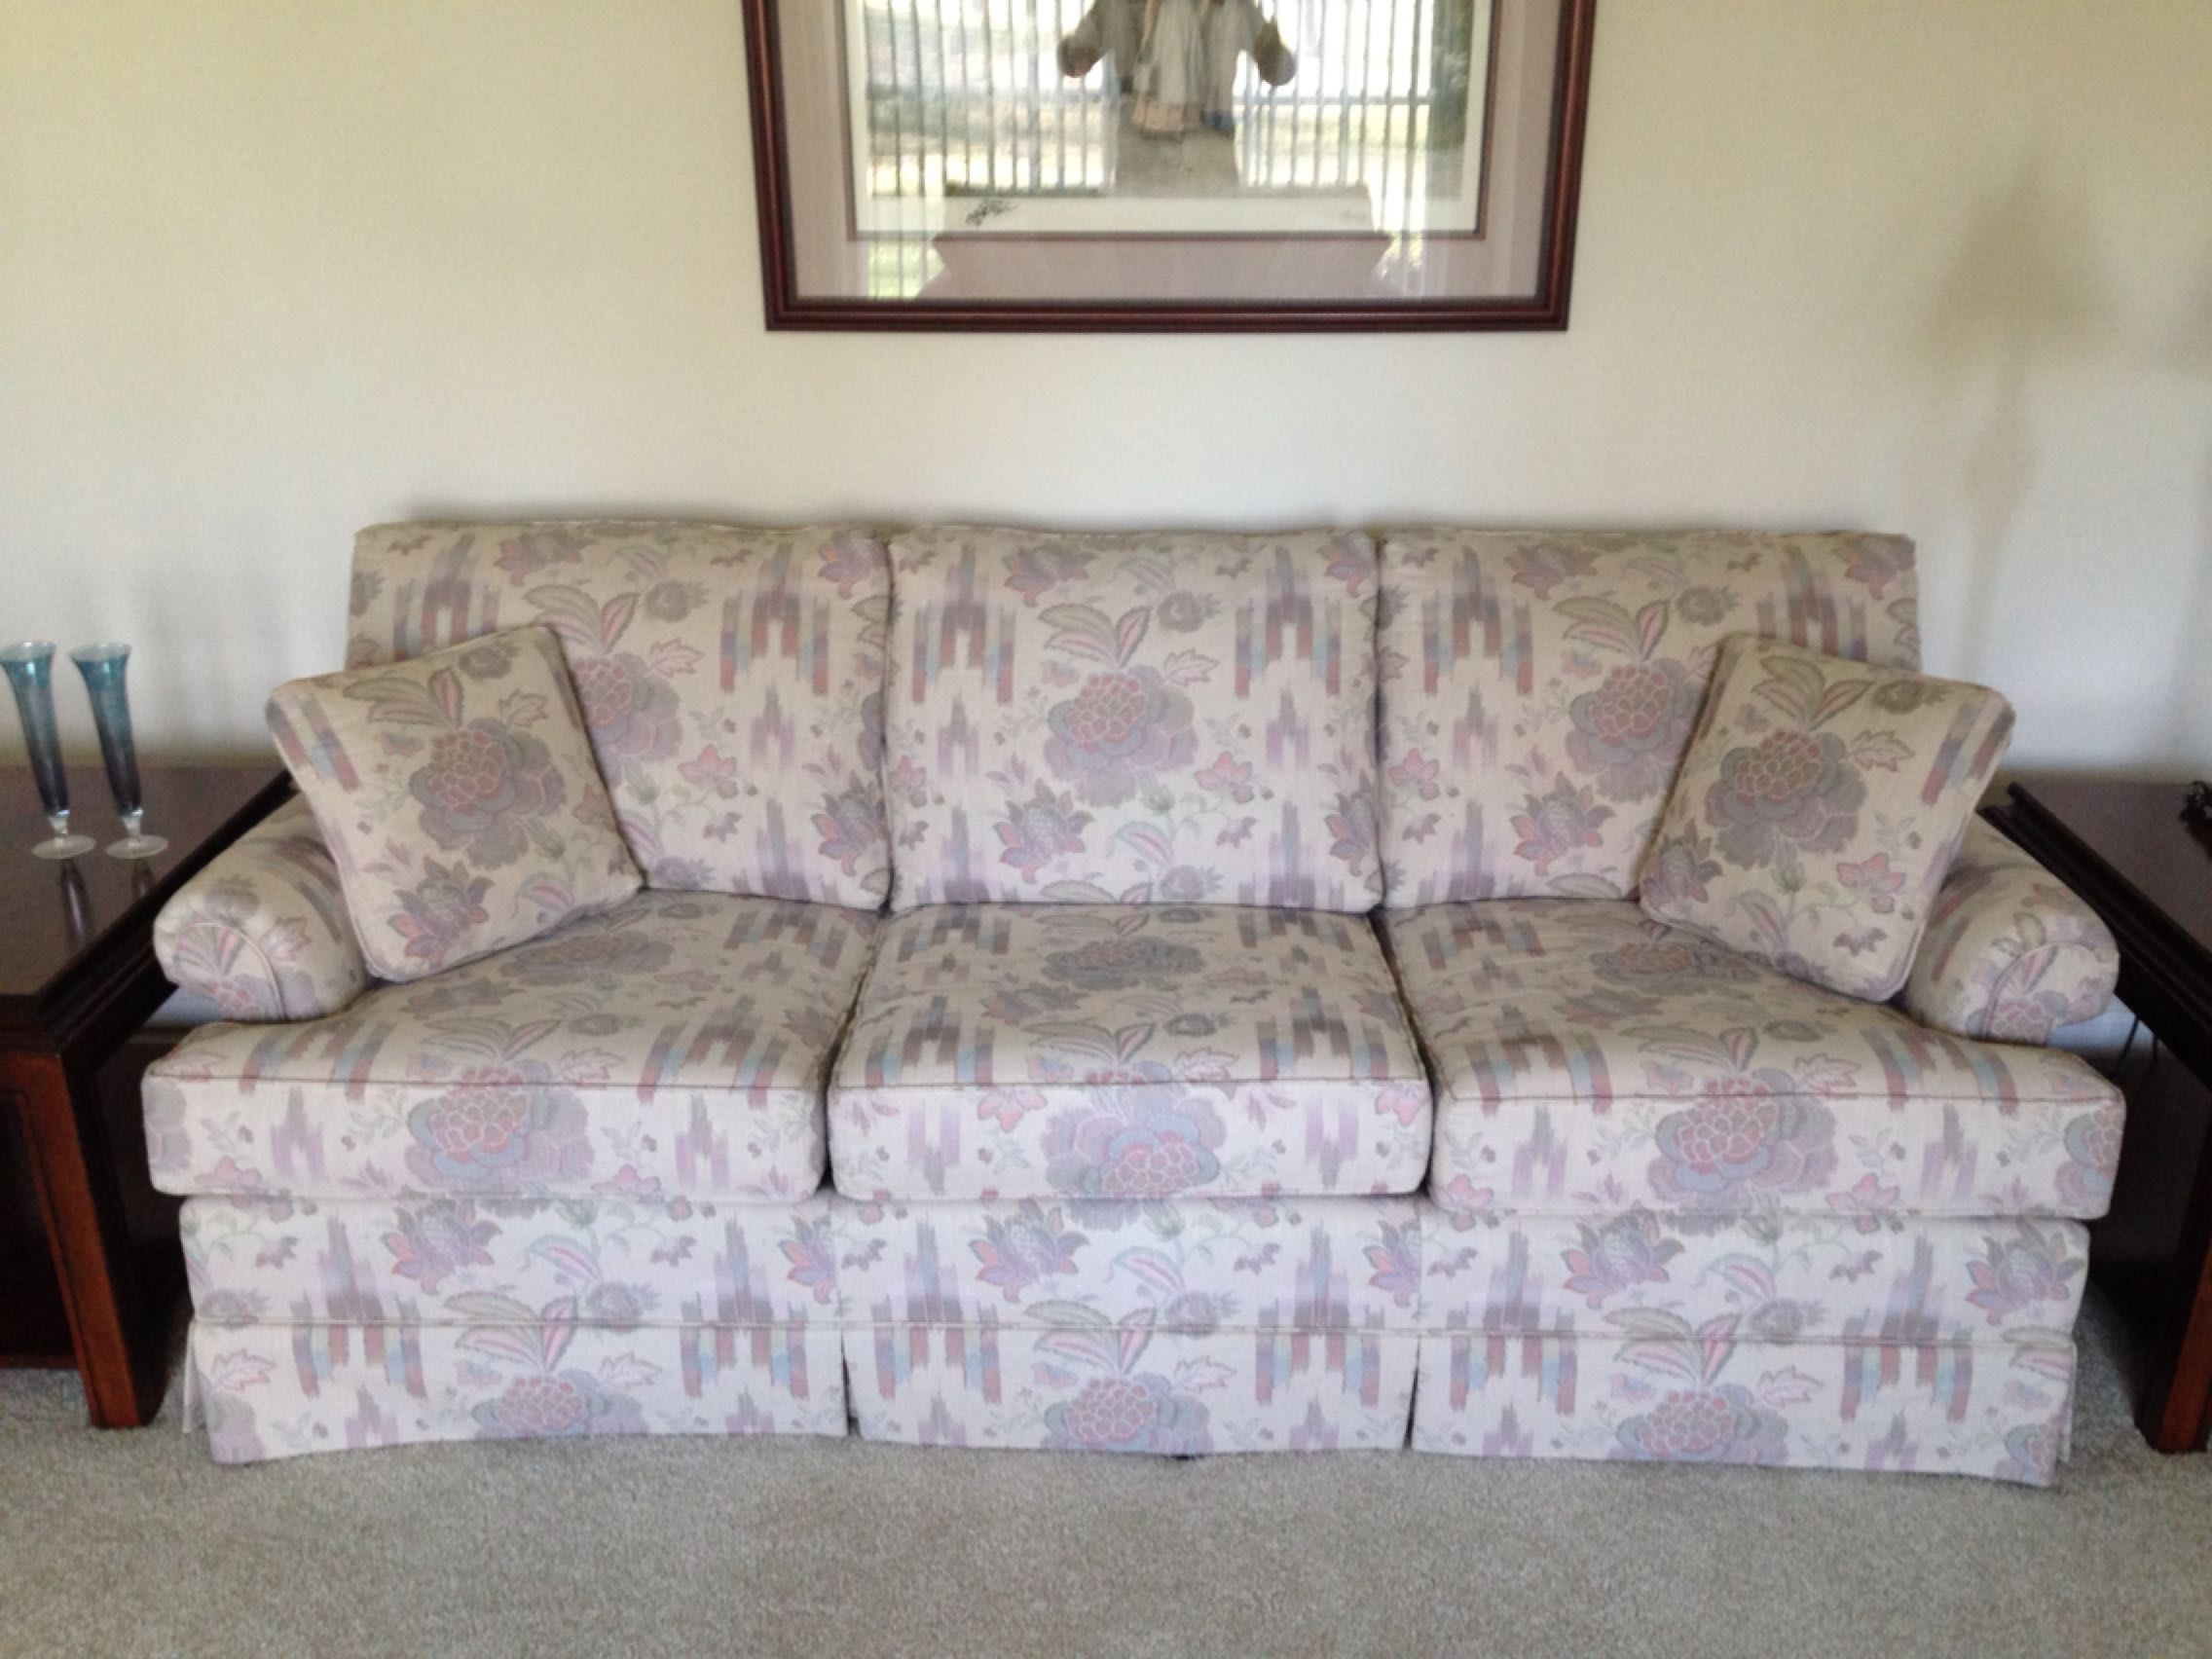 """38Dx80L"""" COCHRANE FURNITURE PURCHASED AT B.F. MYERS COUCH & LOVE-SEAT SET, HIGH QUALITY, GREAT CONDITION, PICK UP WHITE HOUSE OBO"""